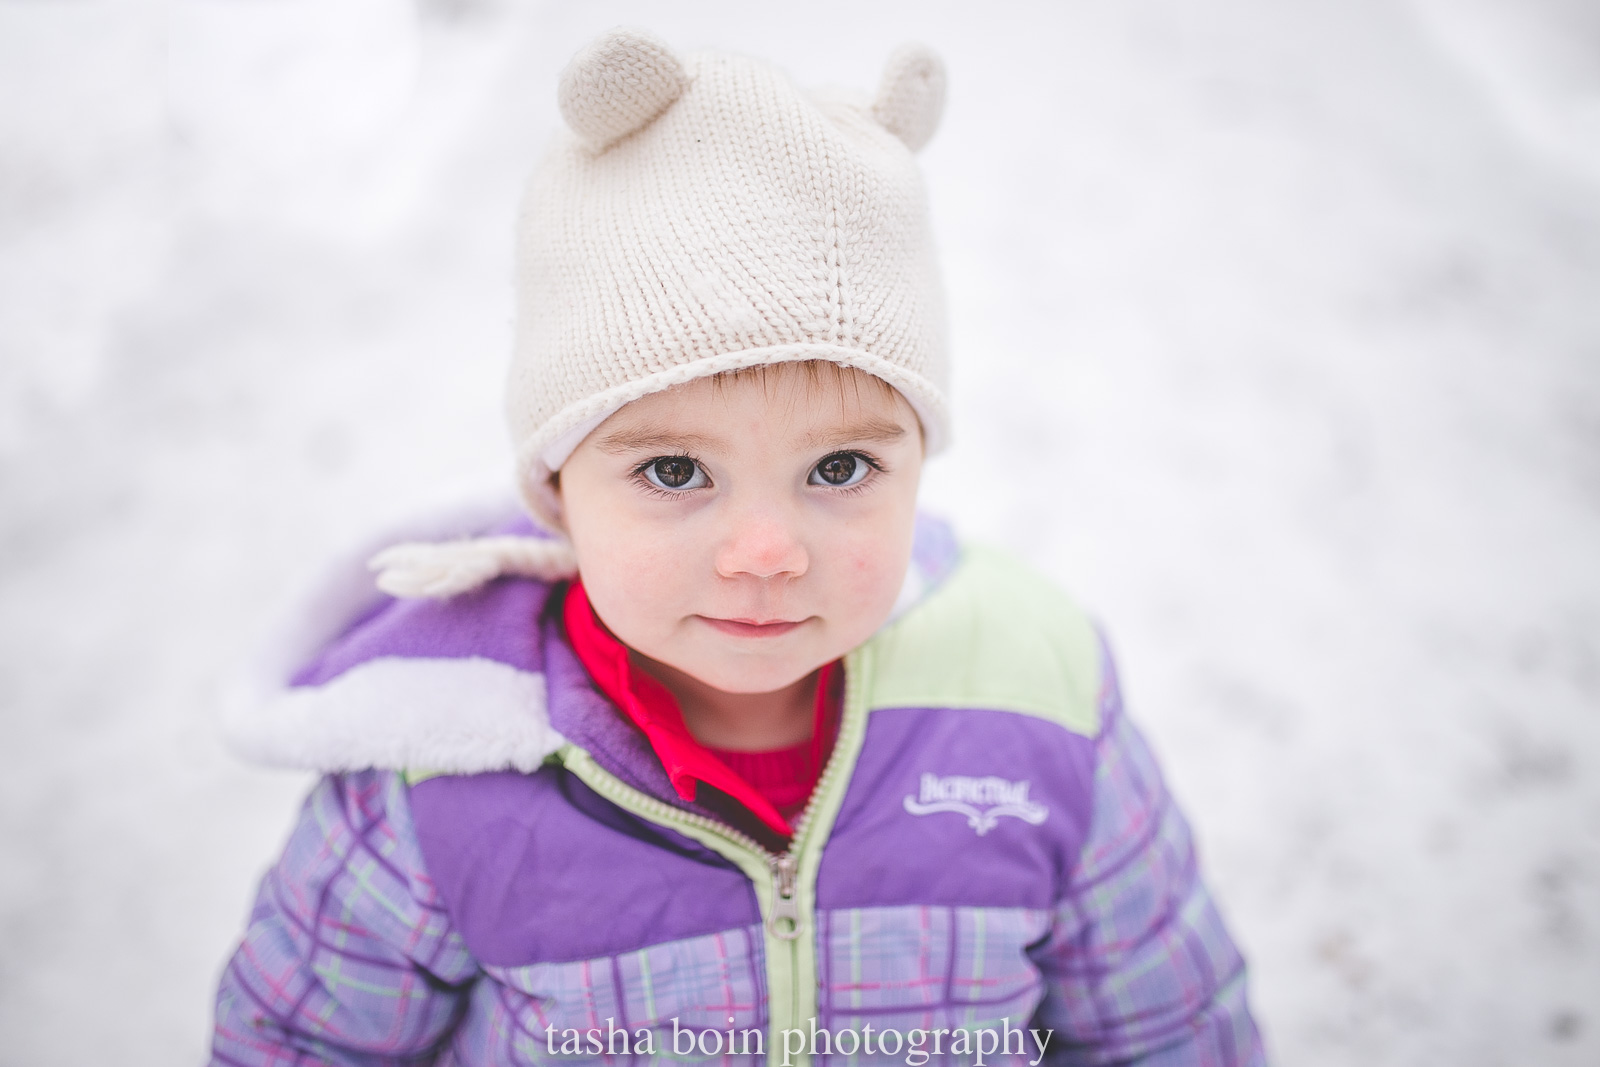 child-photography-in-the-snow-by-Tasha-Boin.jpg